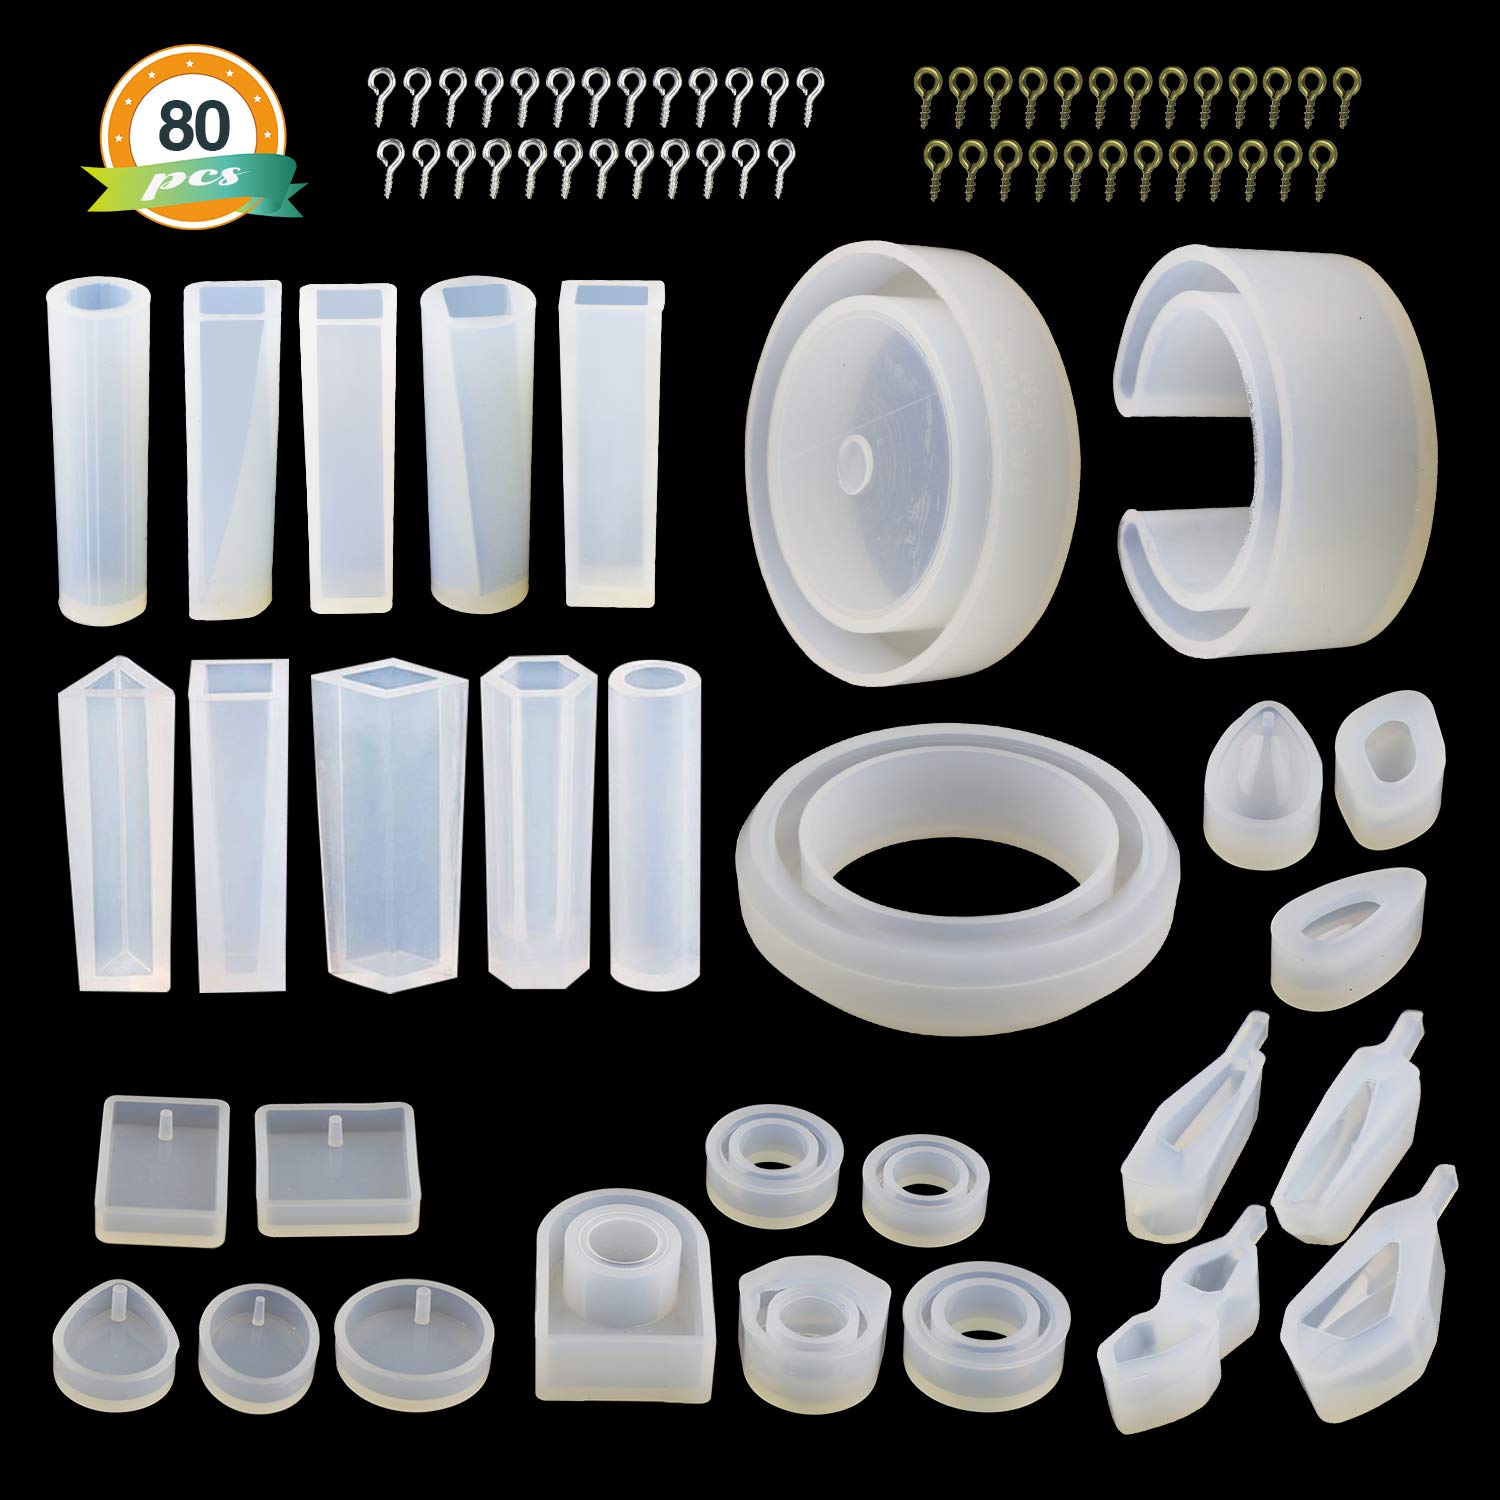 30Pcs Resin Jewelry Molds - LET'S RESIN Silicone Molds for Epoxy Resin, UV Resin, Including Various Shape Pendant Molds, Bangle Molds, Ring Molds, and 50Pcs Screw Eye Pins by LET'S RESIN